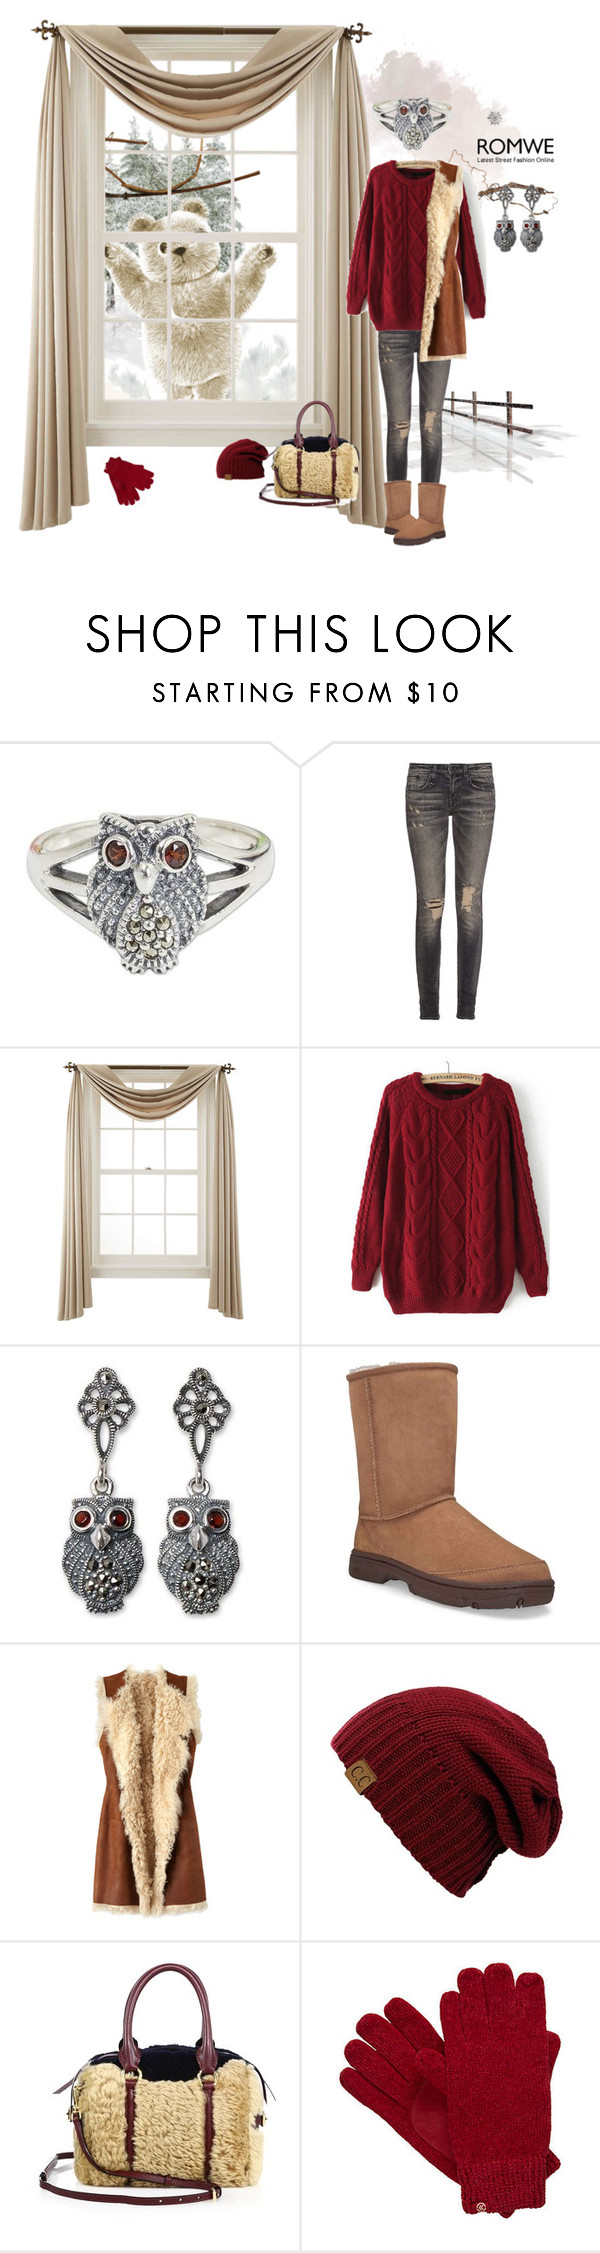 """""""let it snow ... (открой, сова, медведь пришел :)"""" by svetalukashevich ❤ liked on Polyvore featuring NOVICA, R13, Liz Claiborne, UGG Australia, Figue, Burberry and Isotoner"""